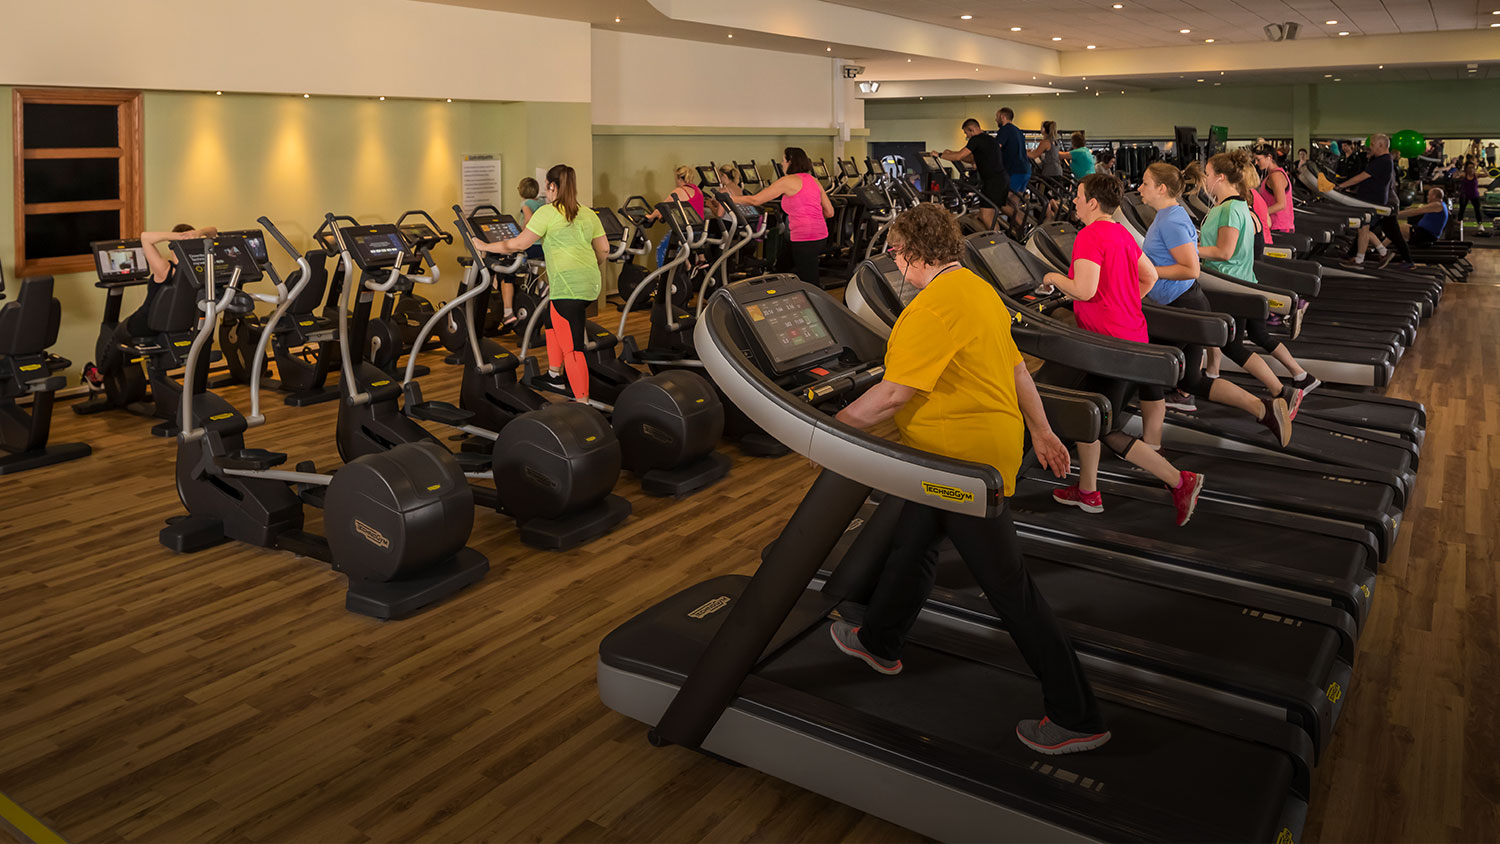 Gym in Gloucester, Fitness & Wellbeing | Nuffield Health